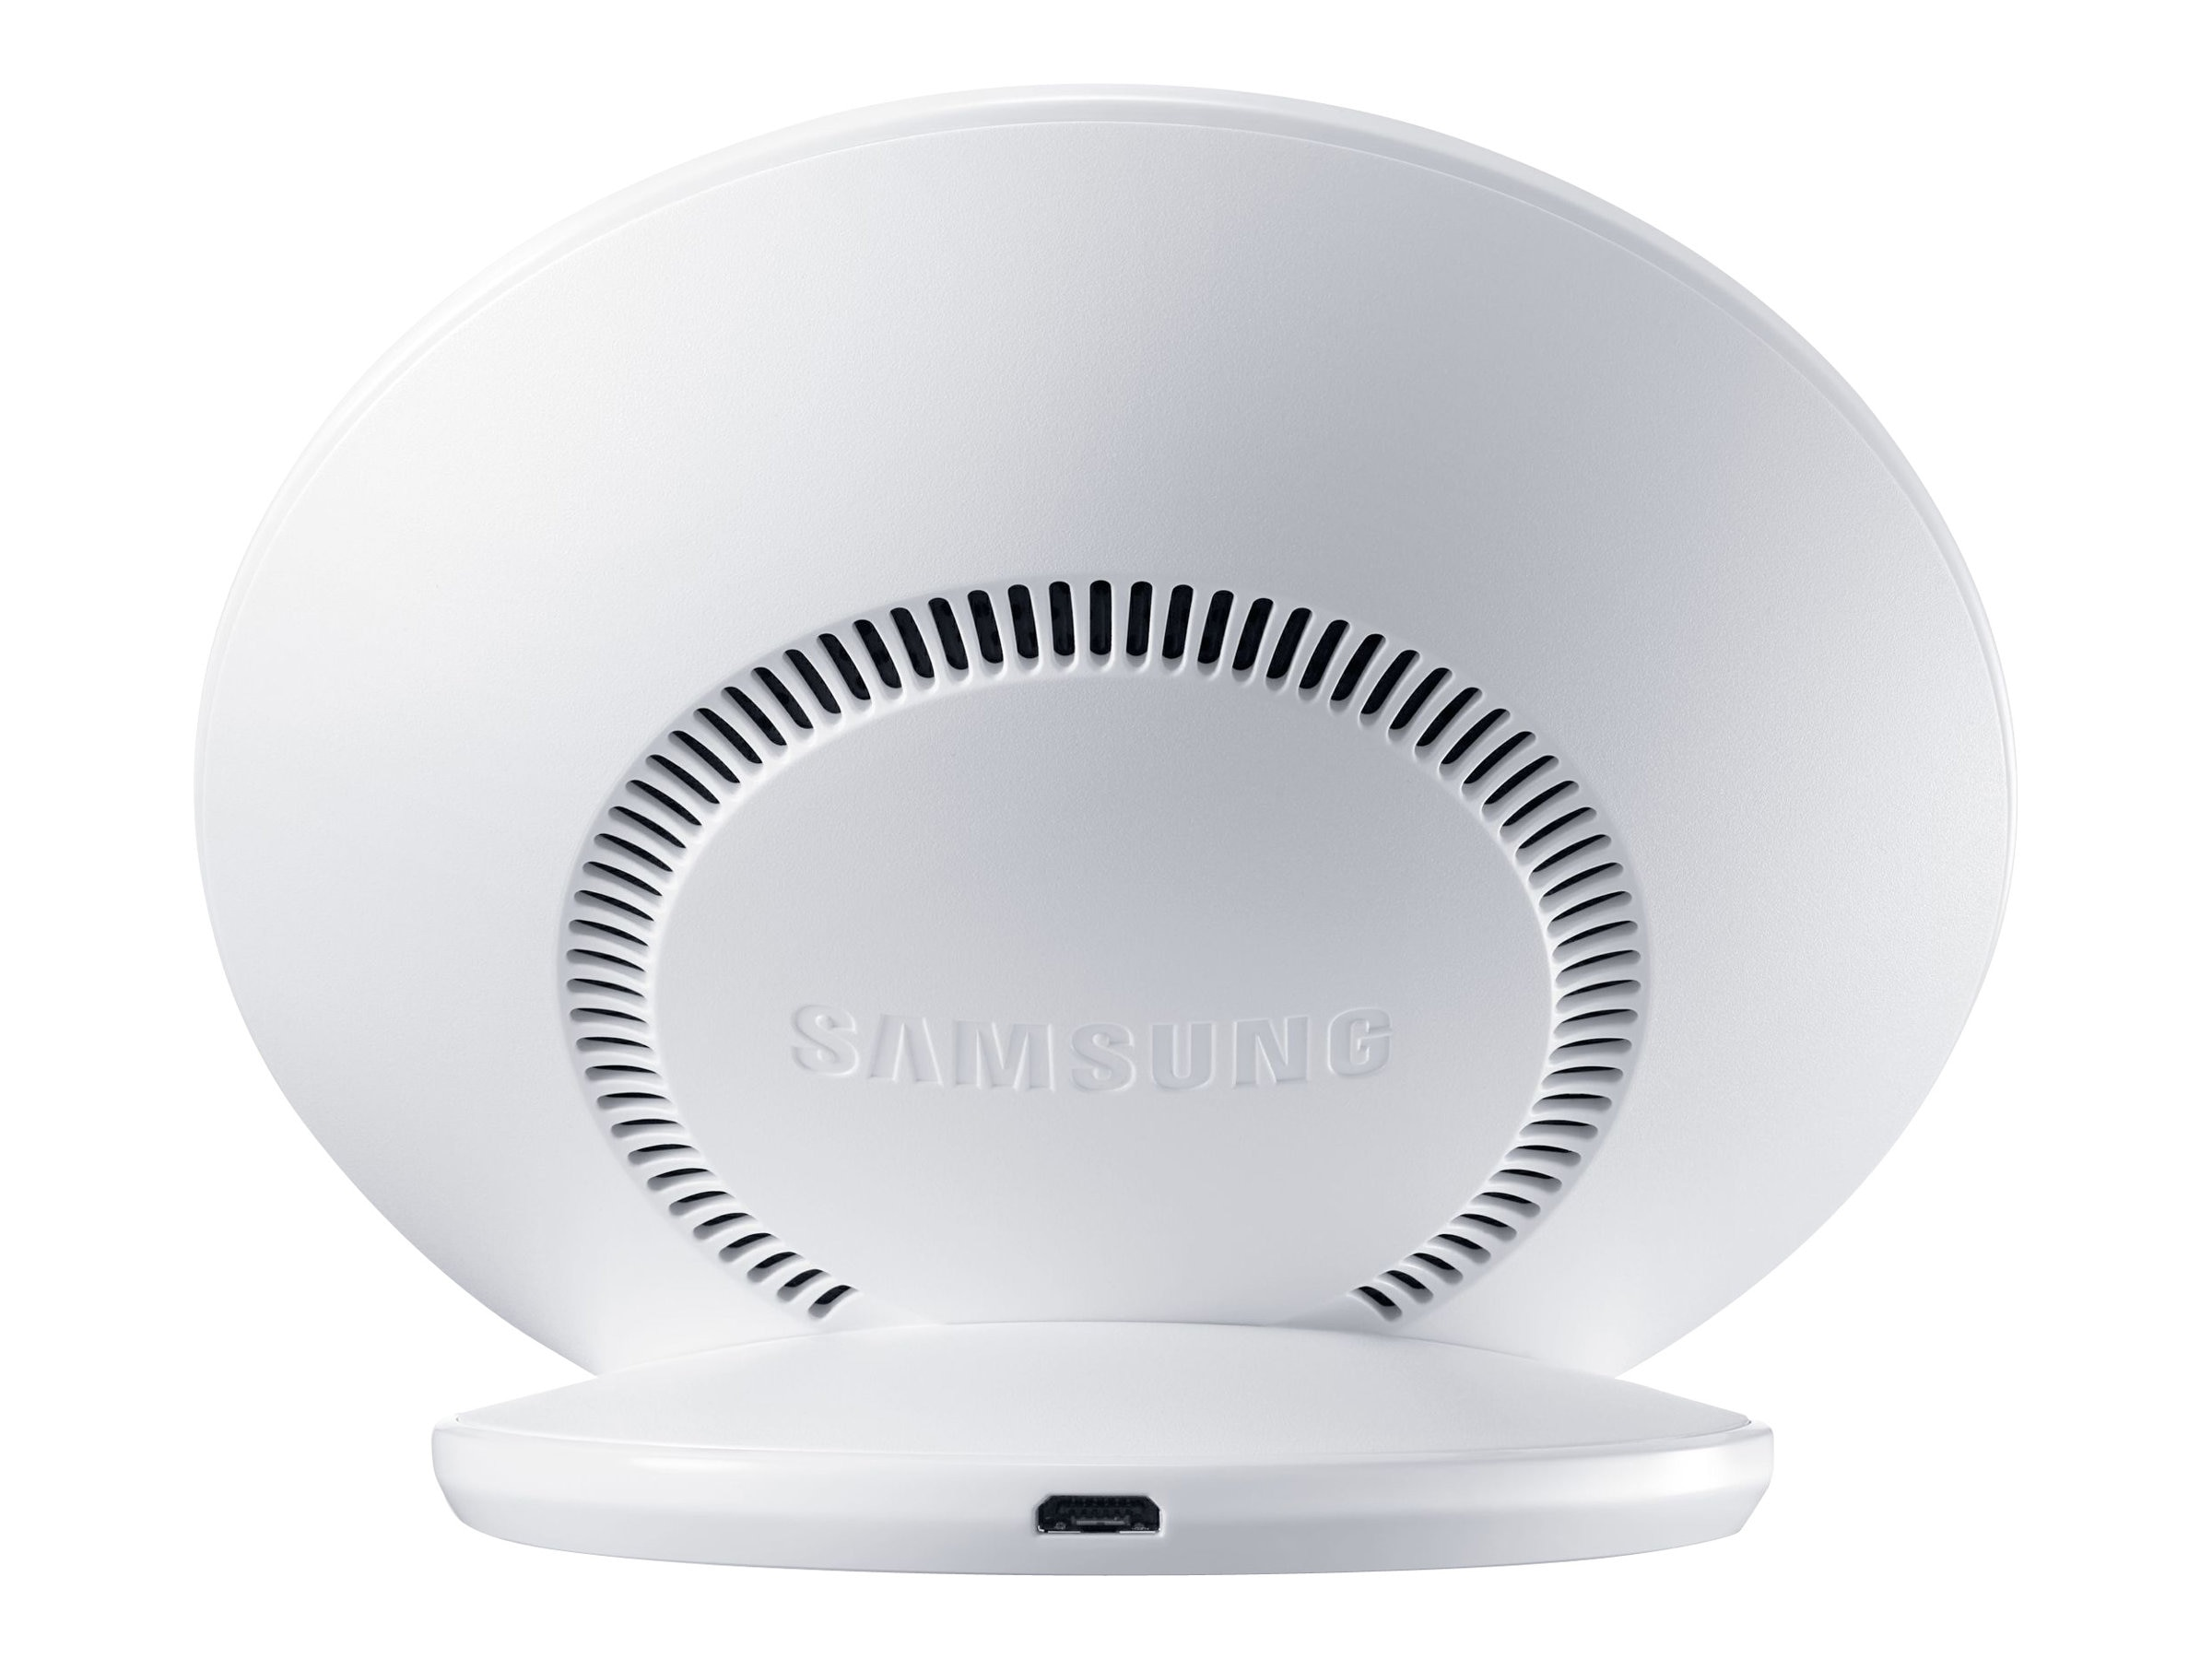 Samsung Fast Charge Wireless Charging Stand, White, EP-NG930TWUGUS